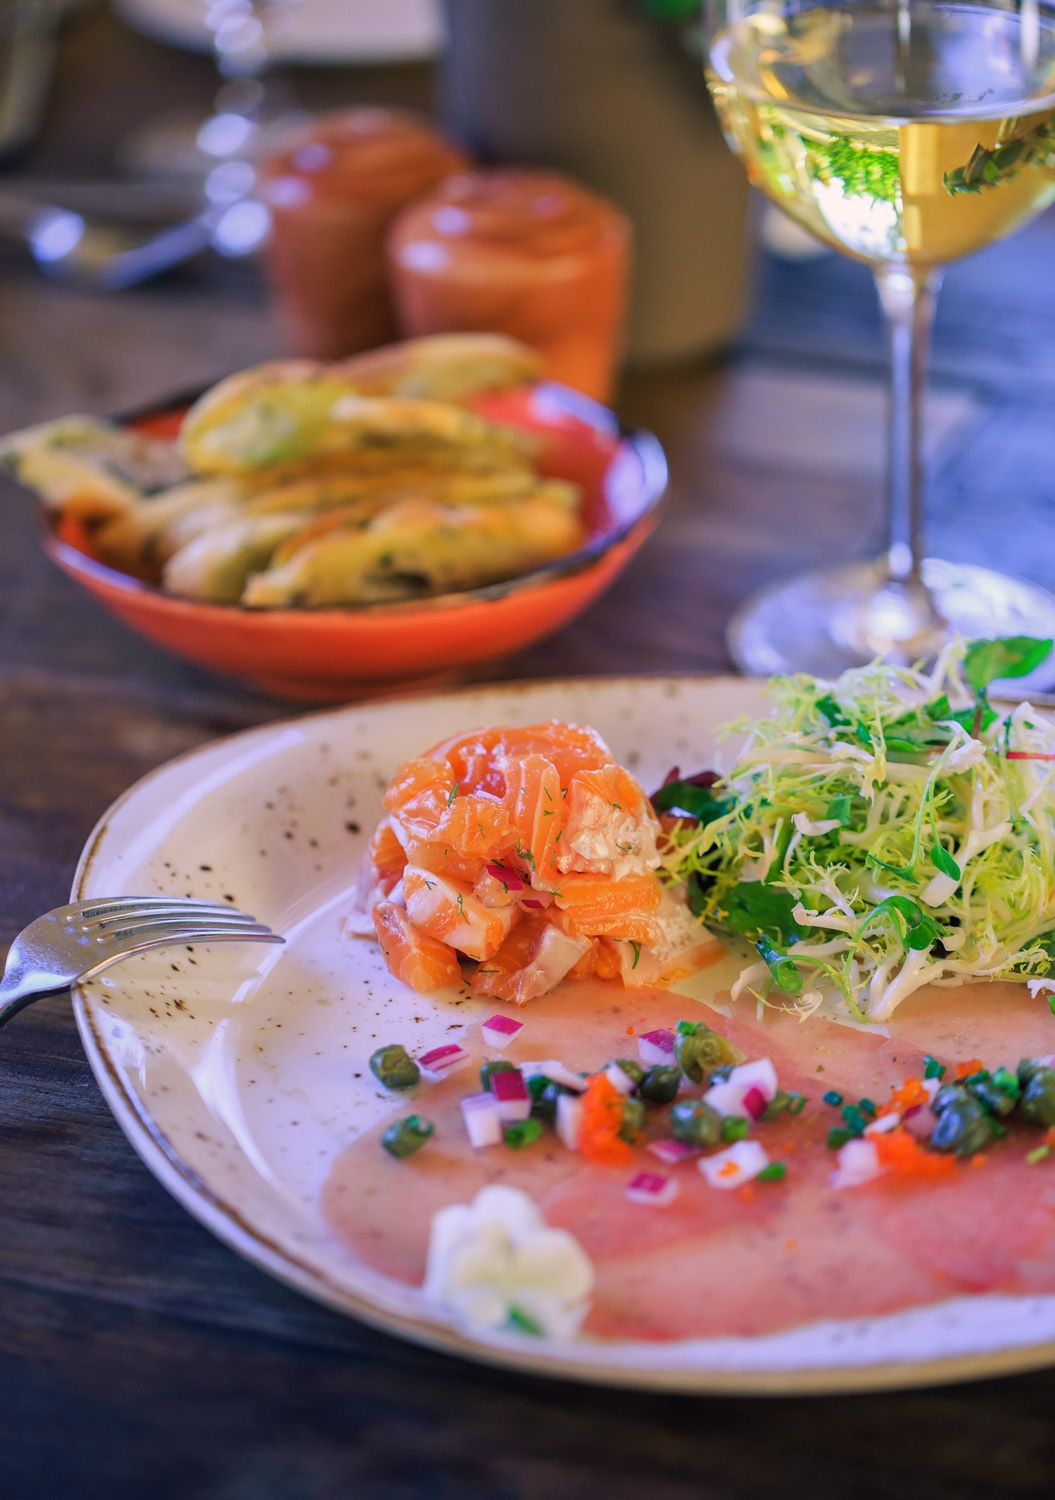 Bigeye Tuna Carpaccio accompanied by a glass of white wine prepa